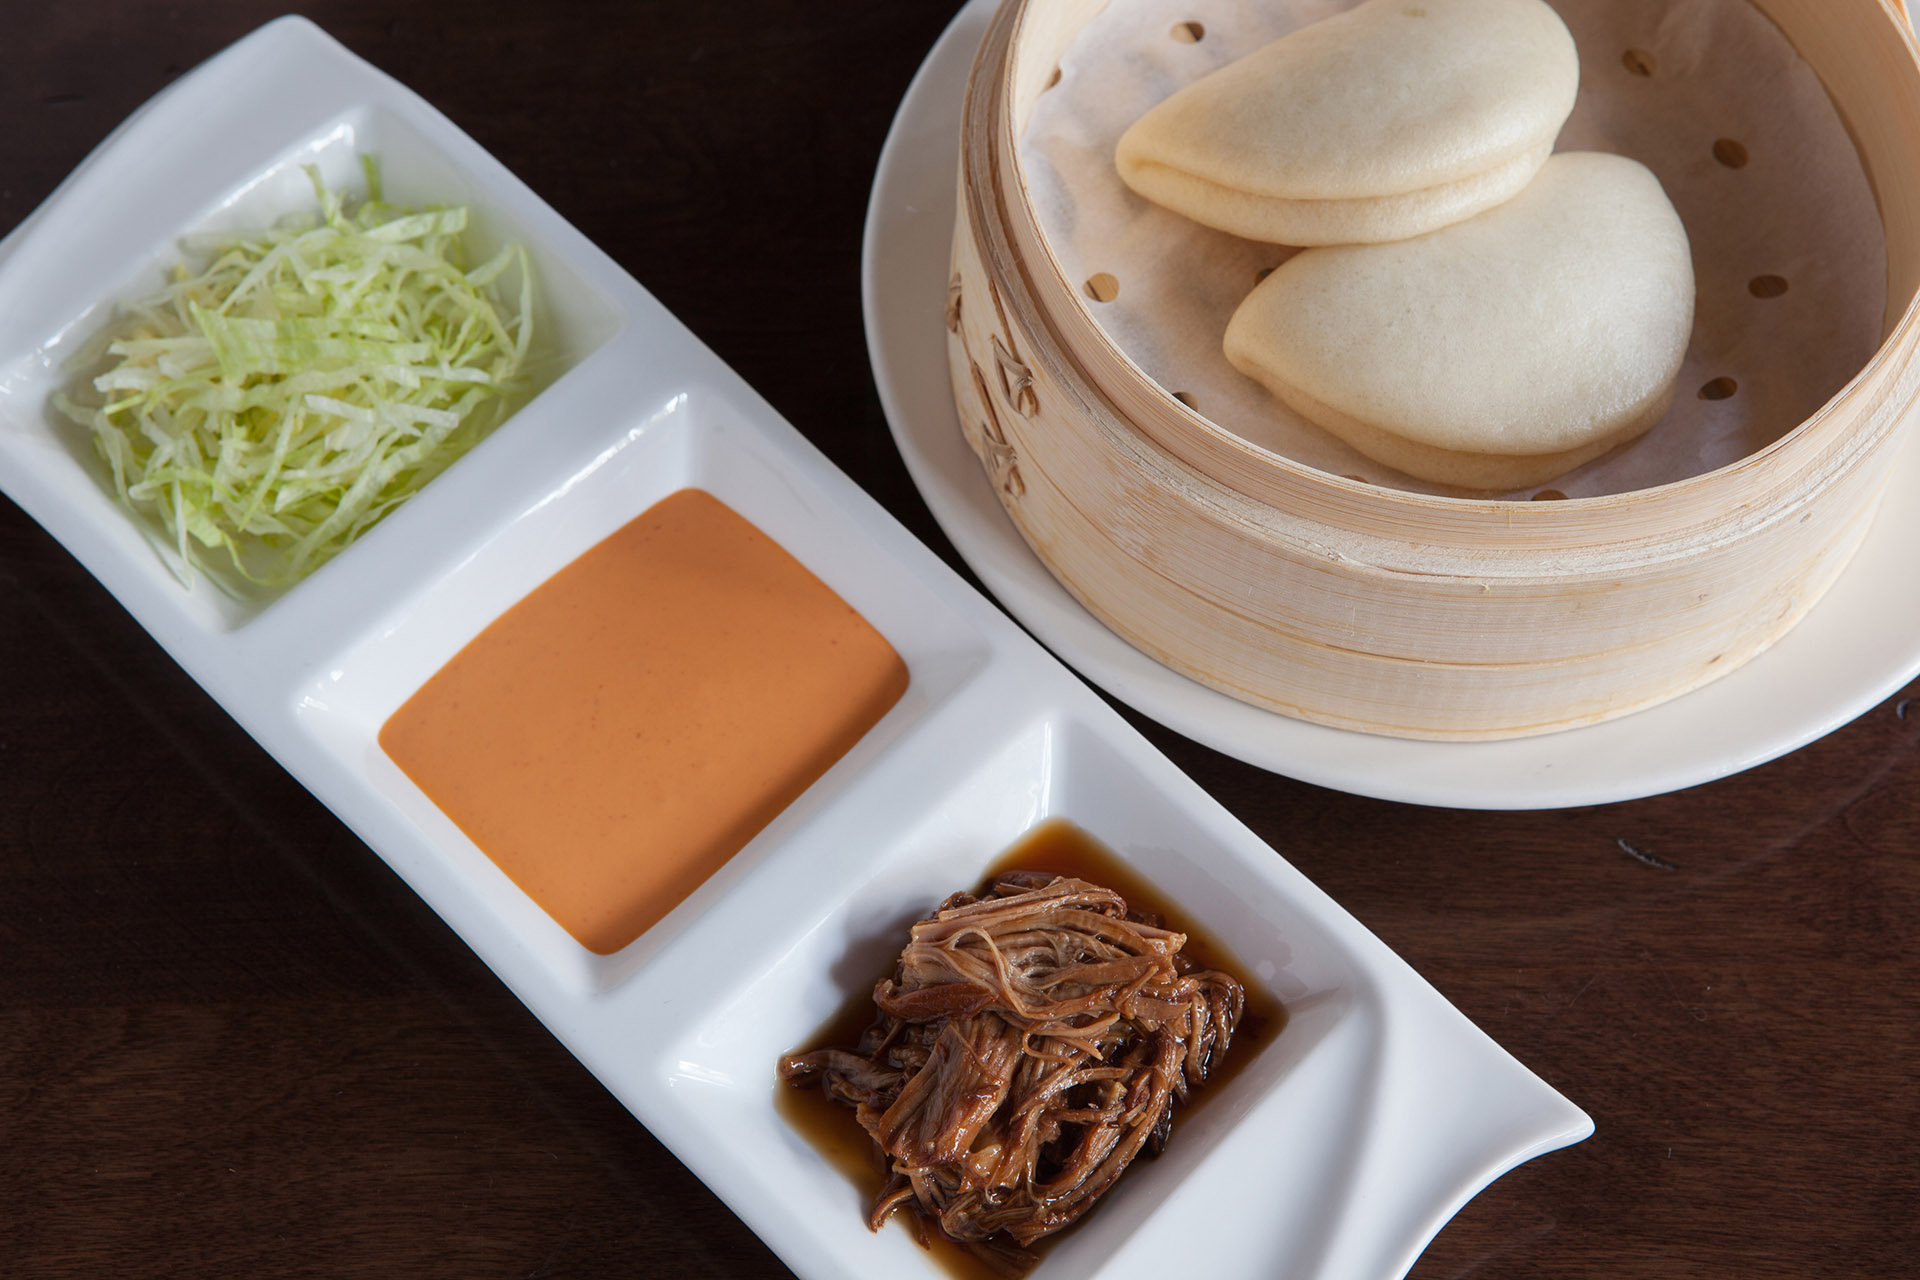 Pulled Pork Bao [2] at Lee Chen Asian Bistro